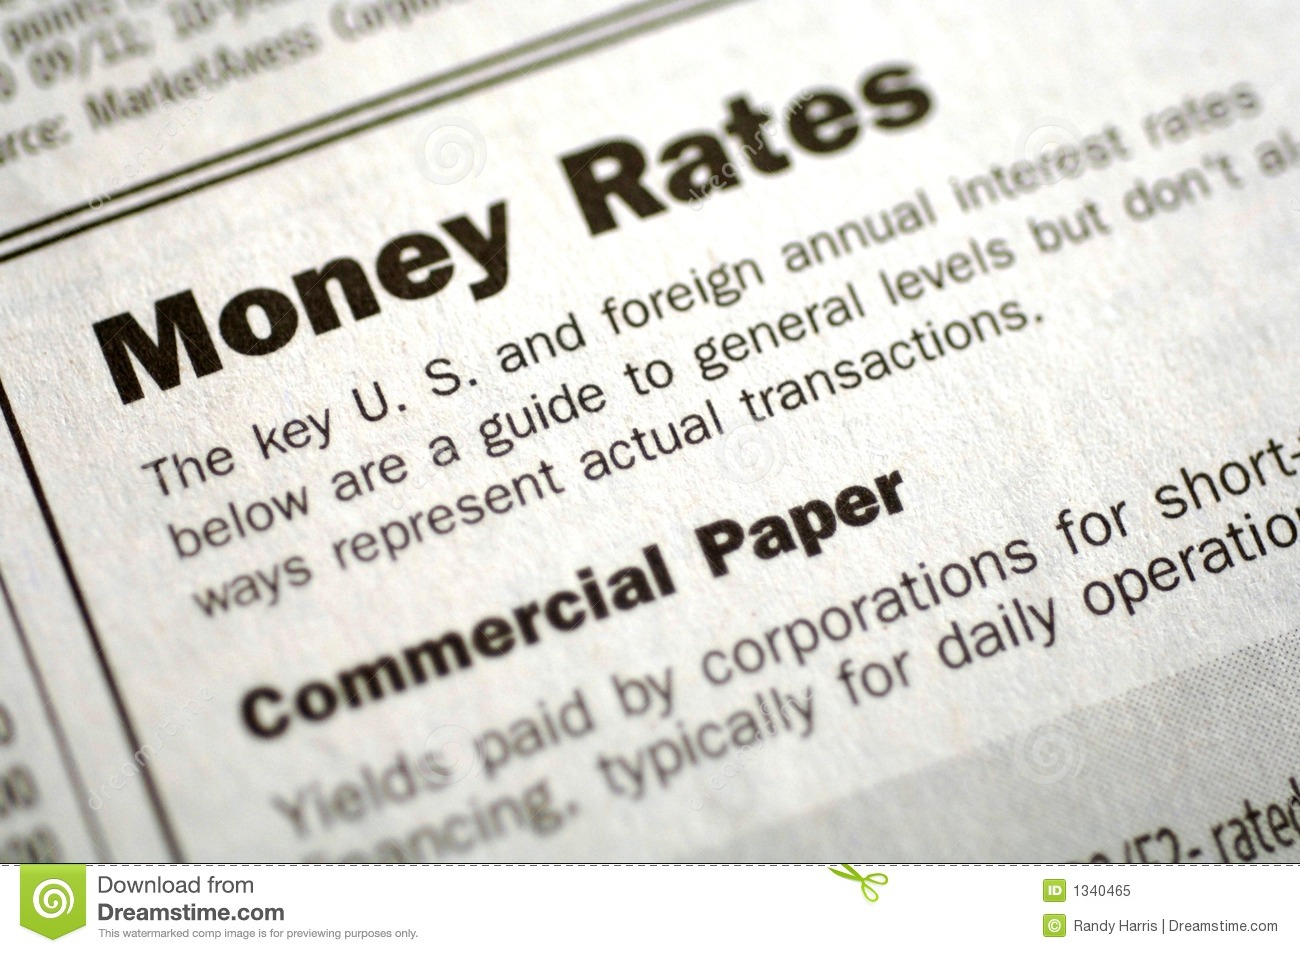 Commercial paper for individual investors